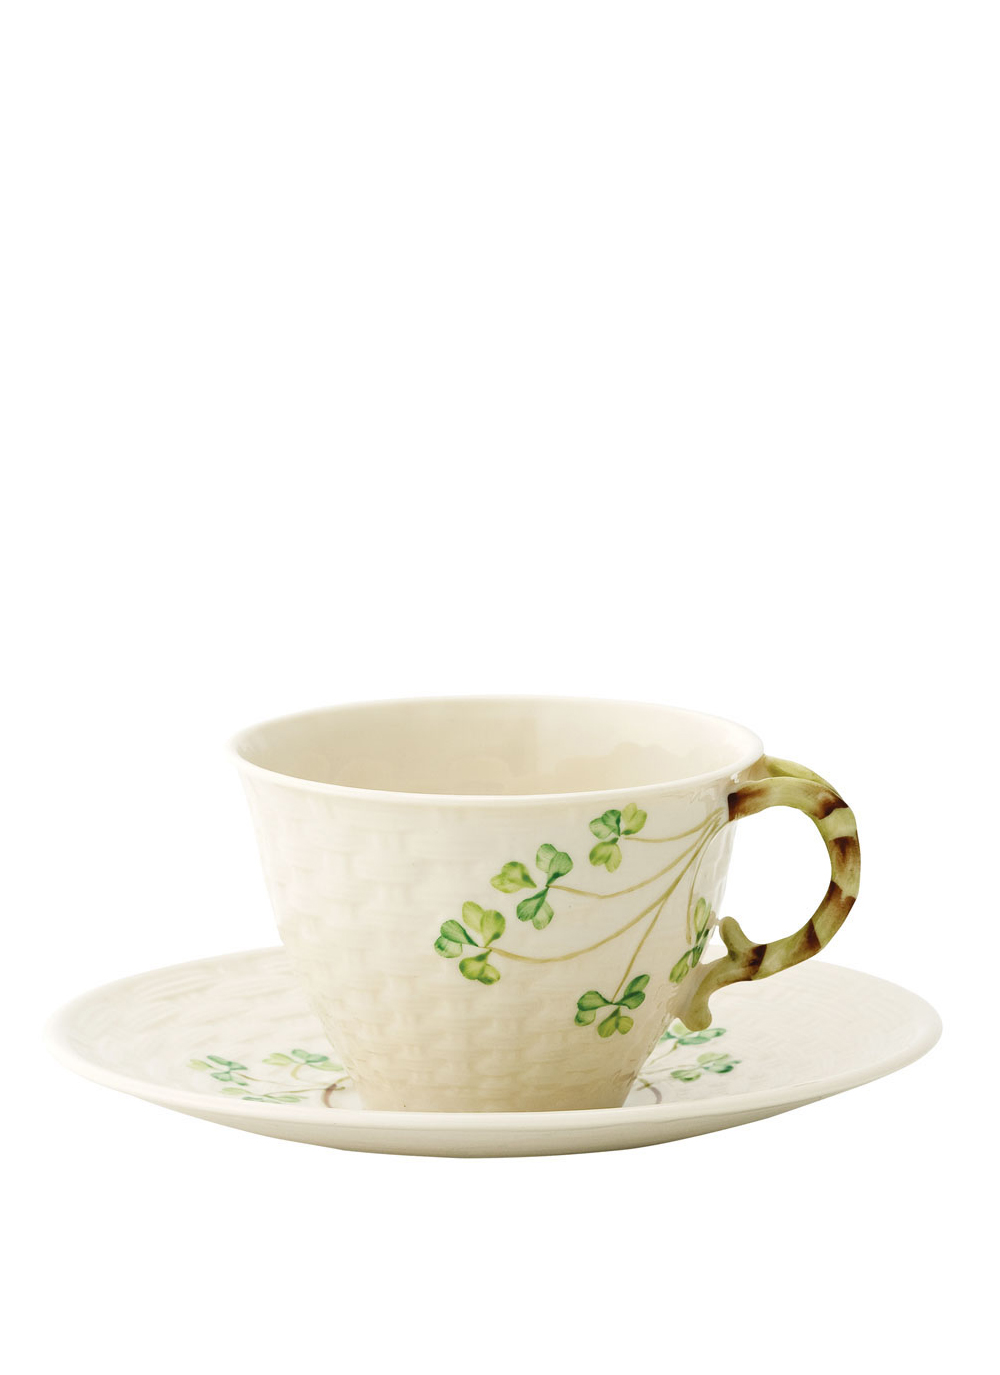 Belleek China Shamrock Tea Cup Amp Saucer Blarney